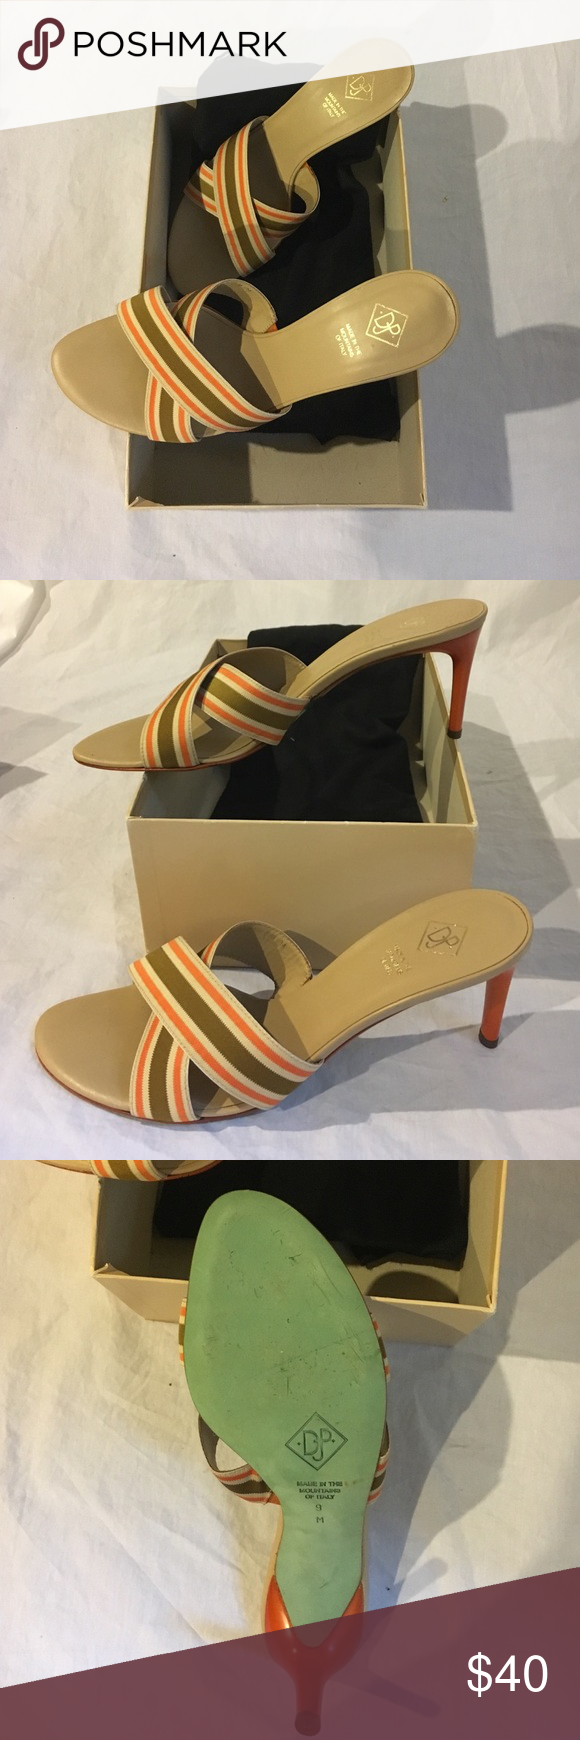 Donald J. Pliner pump Donald J. Pliner pump with striped, leather lined upper.  Tangerine, sand, and khaki racing stripe. Very little wear. Donald J. Pliner Shoes Heels